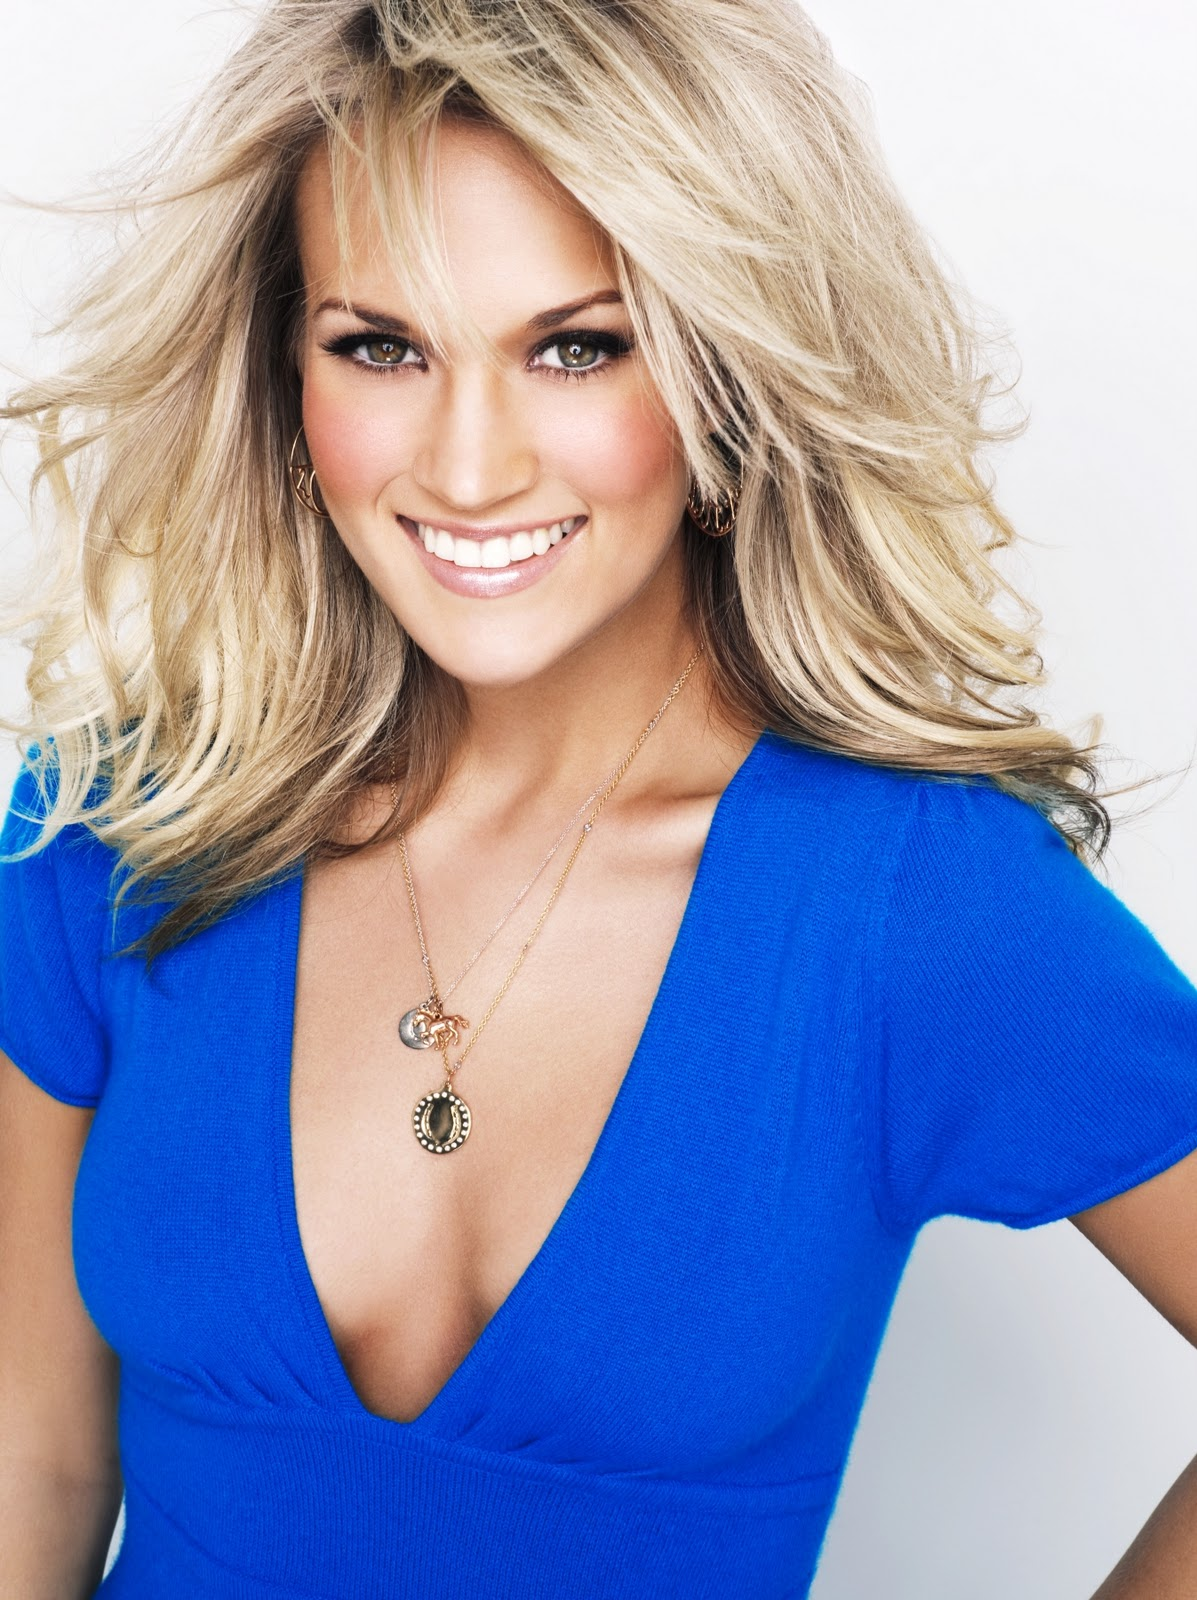 All Carrie Underwood Trivia Quizzes and Games  Sporcle